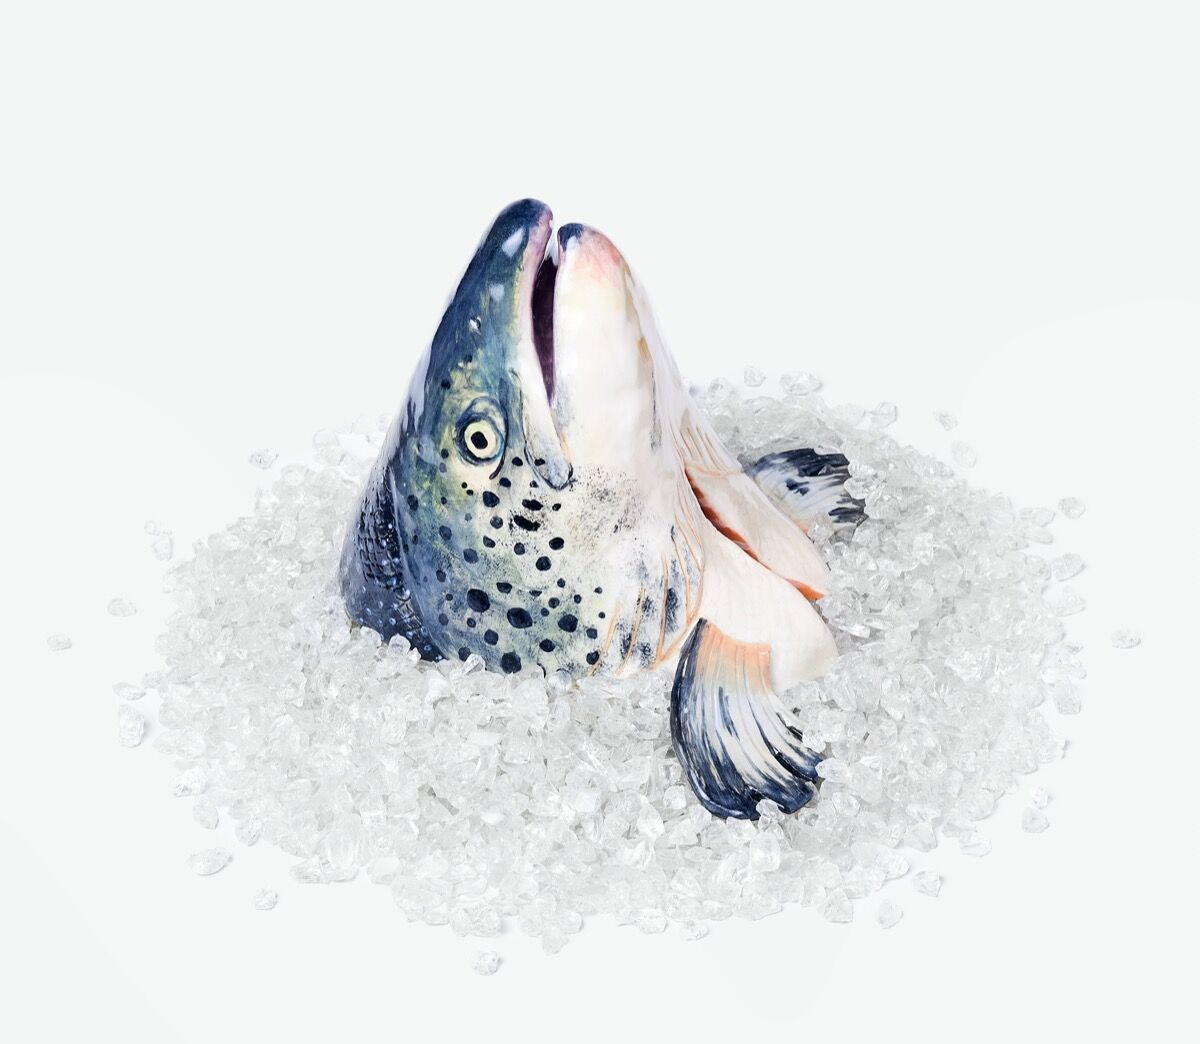 Stephanie H. Shih, Salmon Head on Ice, 2021. Photo by Robert Bredvad. Courtesy of the artist and Dinner Gallery.